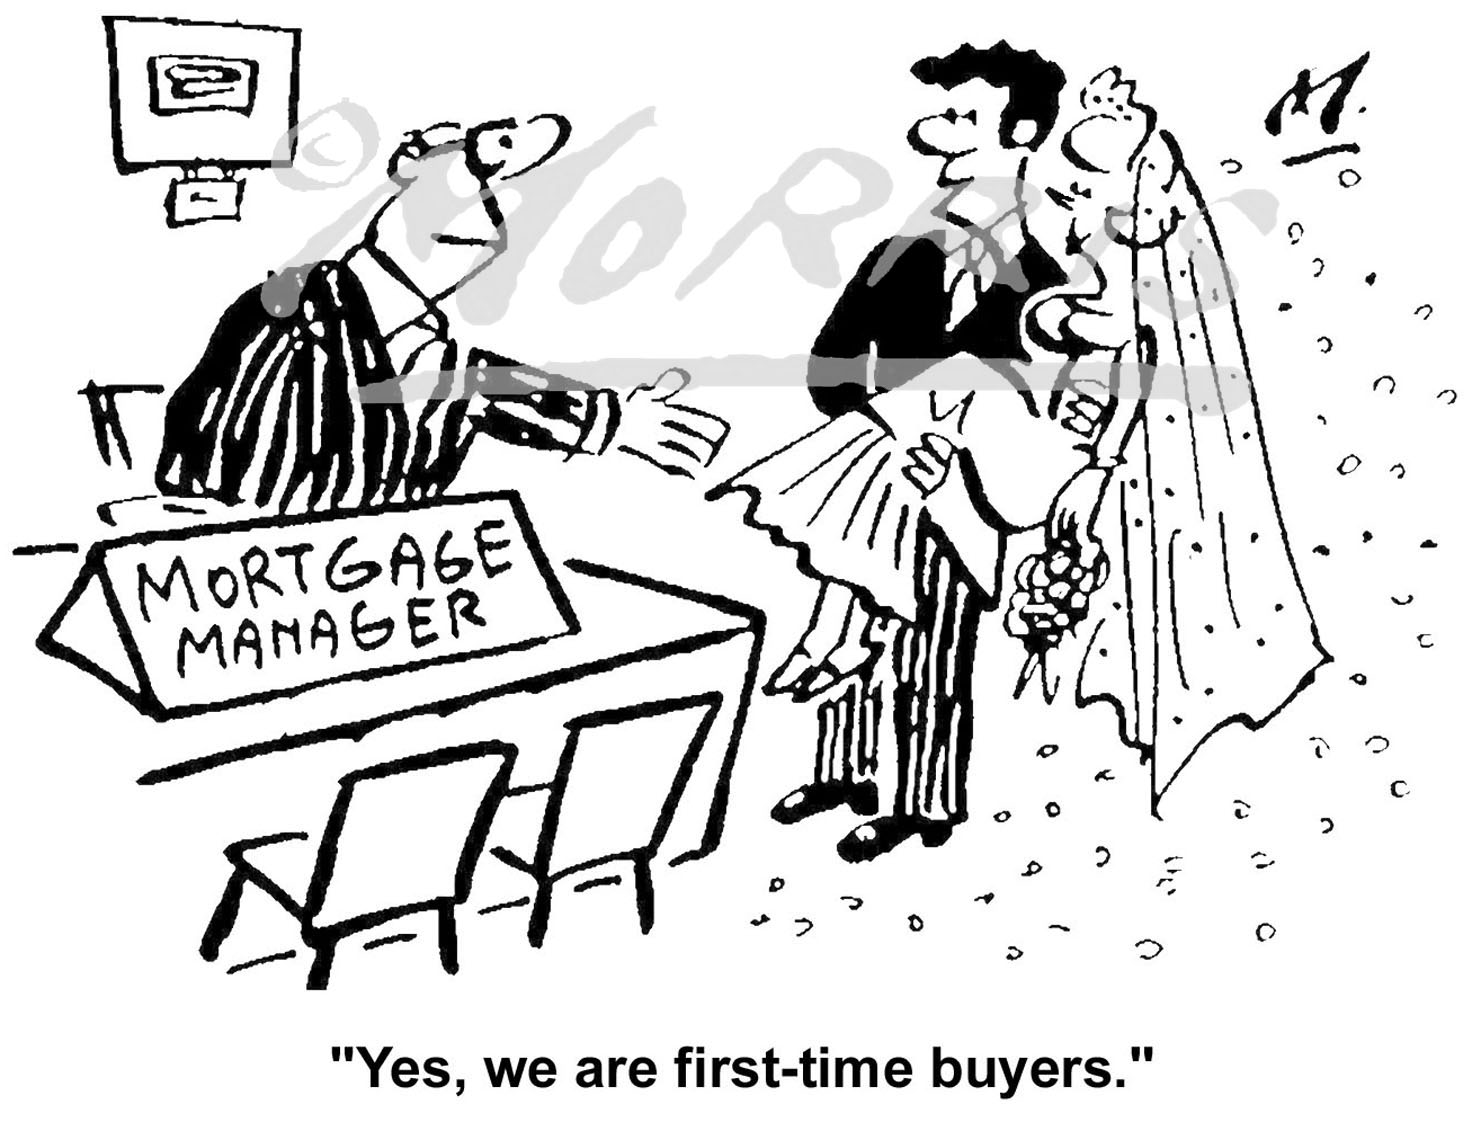 Mortgage bank manager comic cartoon Ref: 0316bw